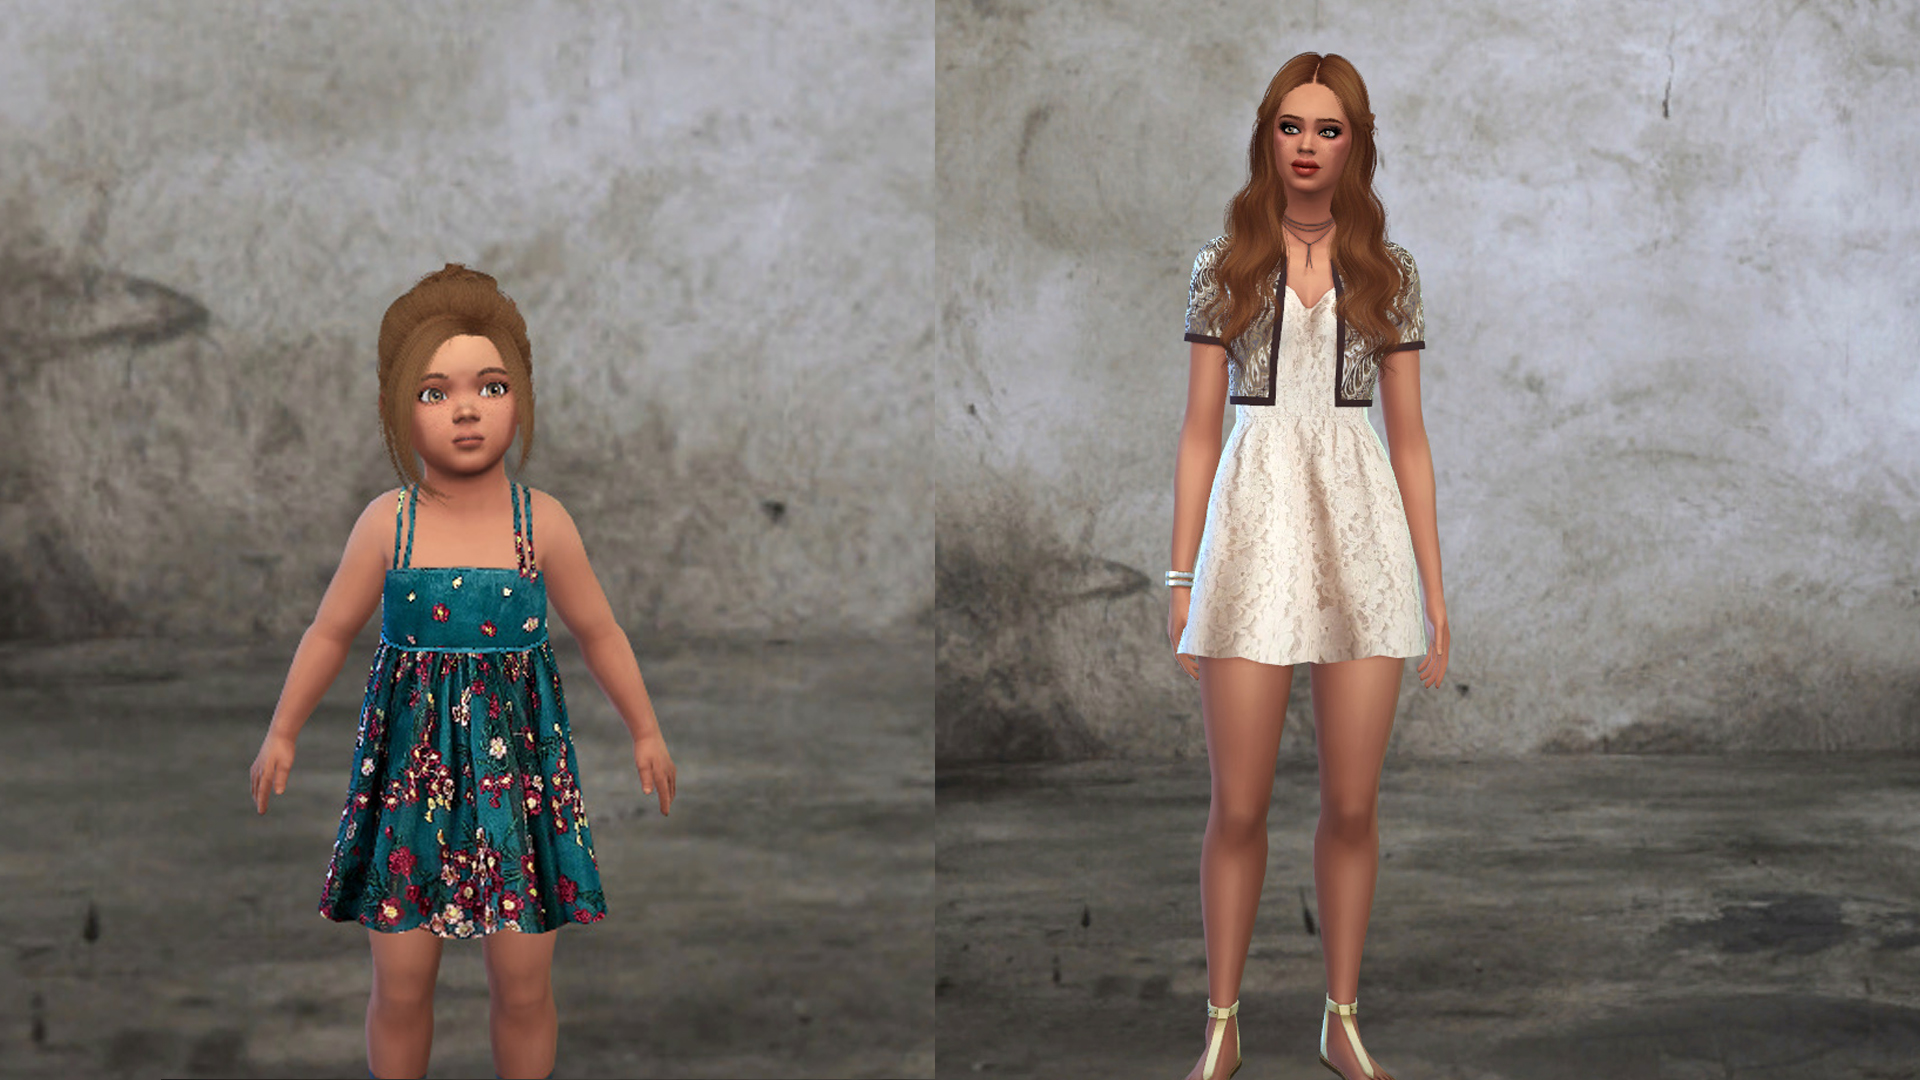 sims 4 toddler to adult challenge 1.jpg